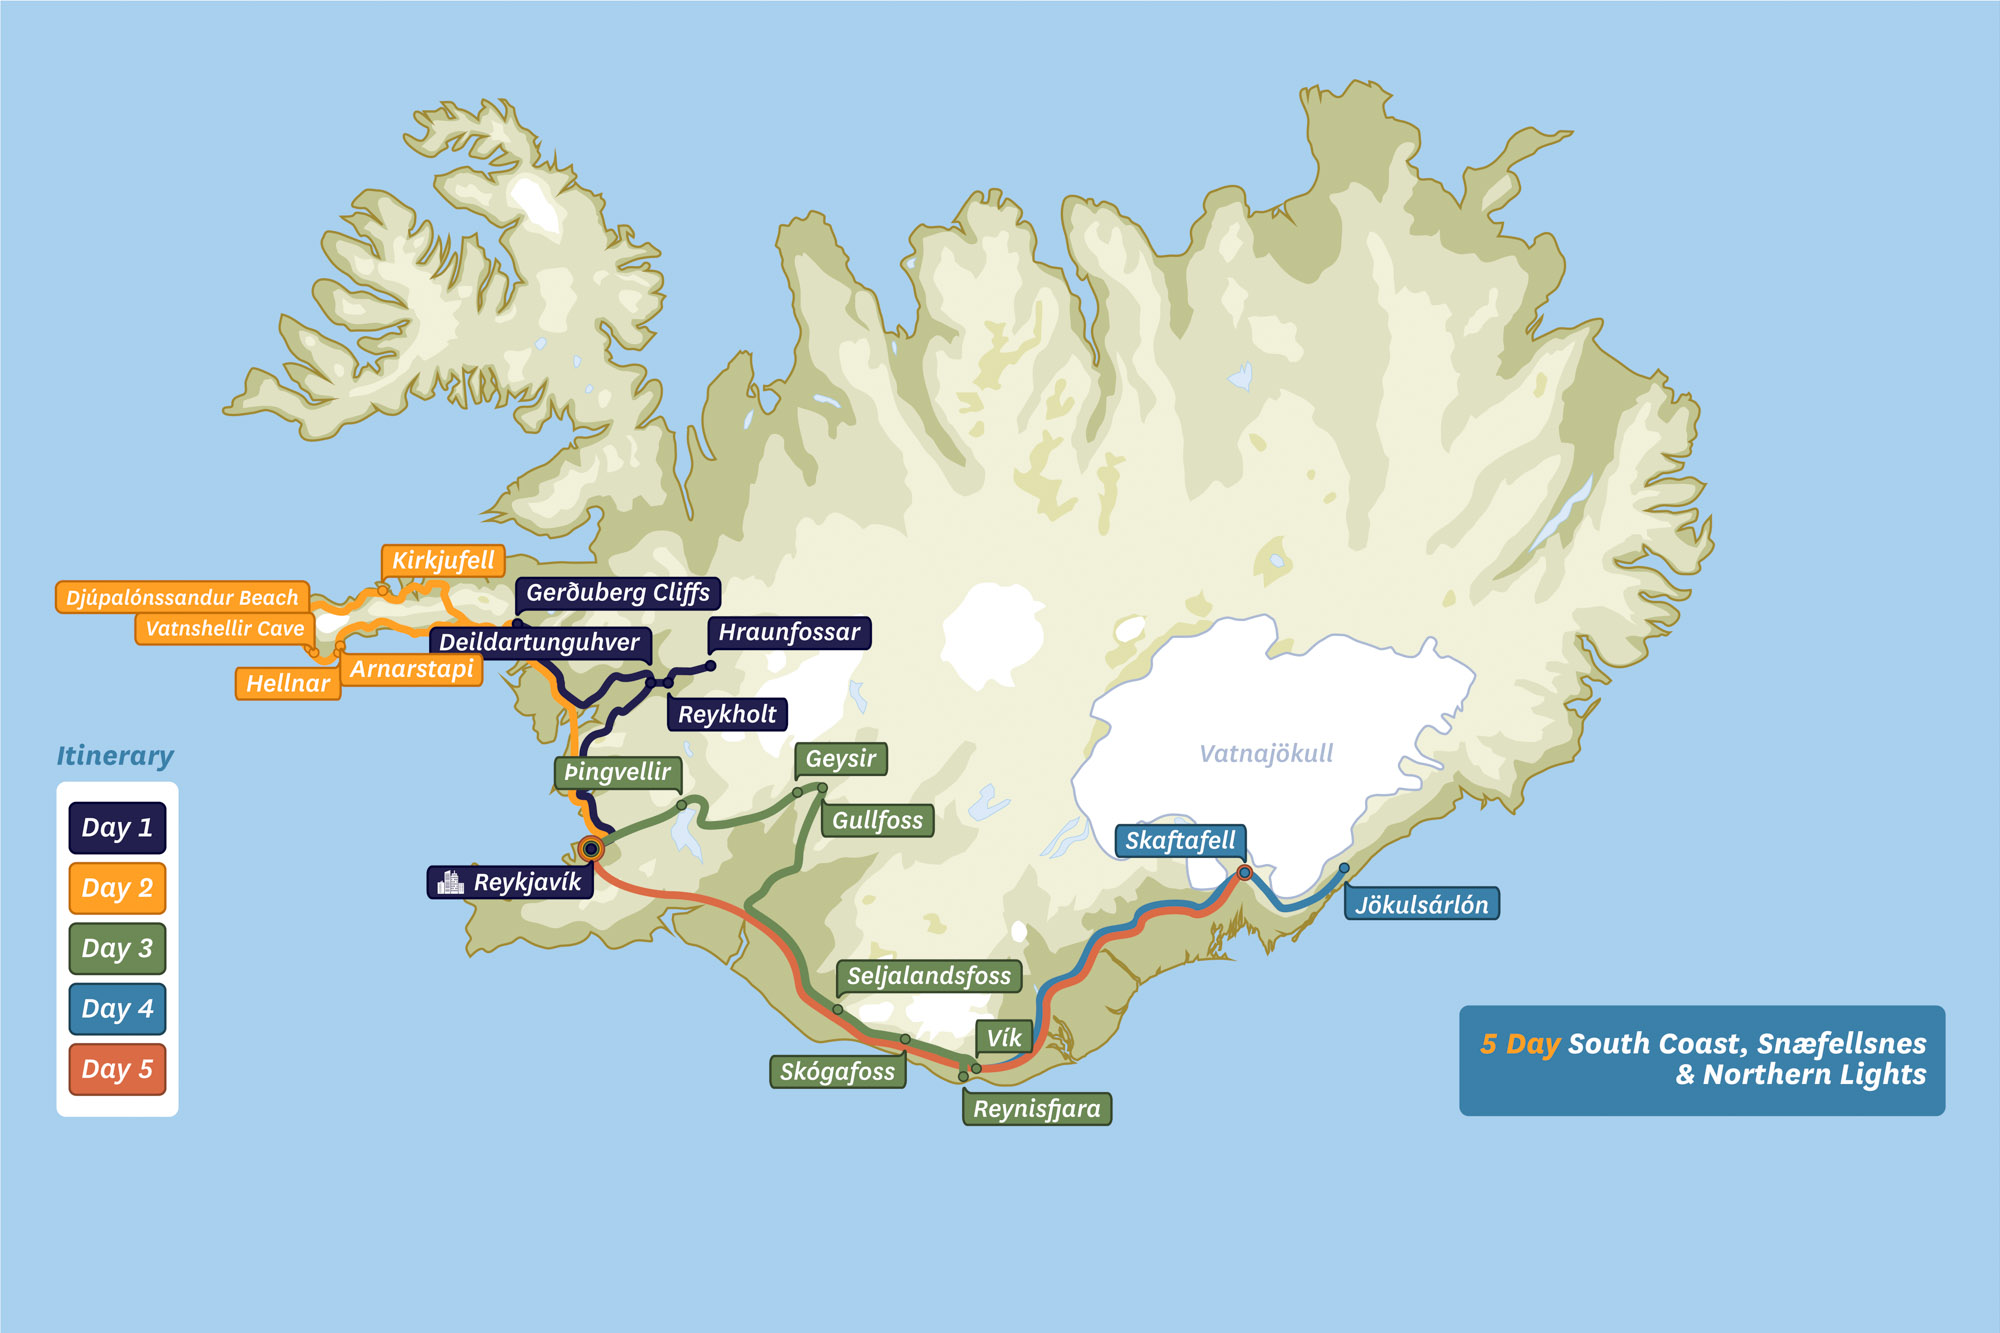 Icelands south coast tour 5 days multi day tour arctic adventures map of iceland 5 day snaefellsnes and northern lights gumiabroncs